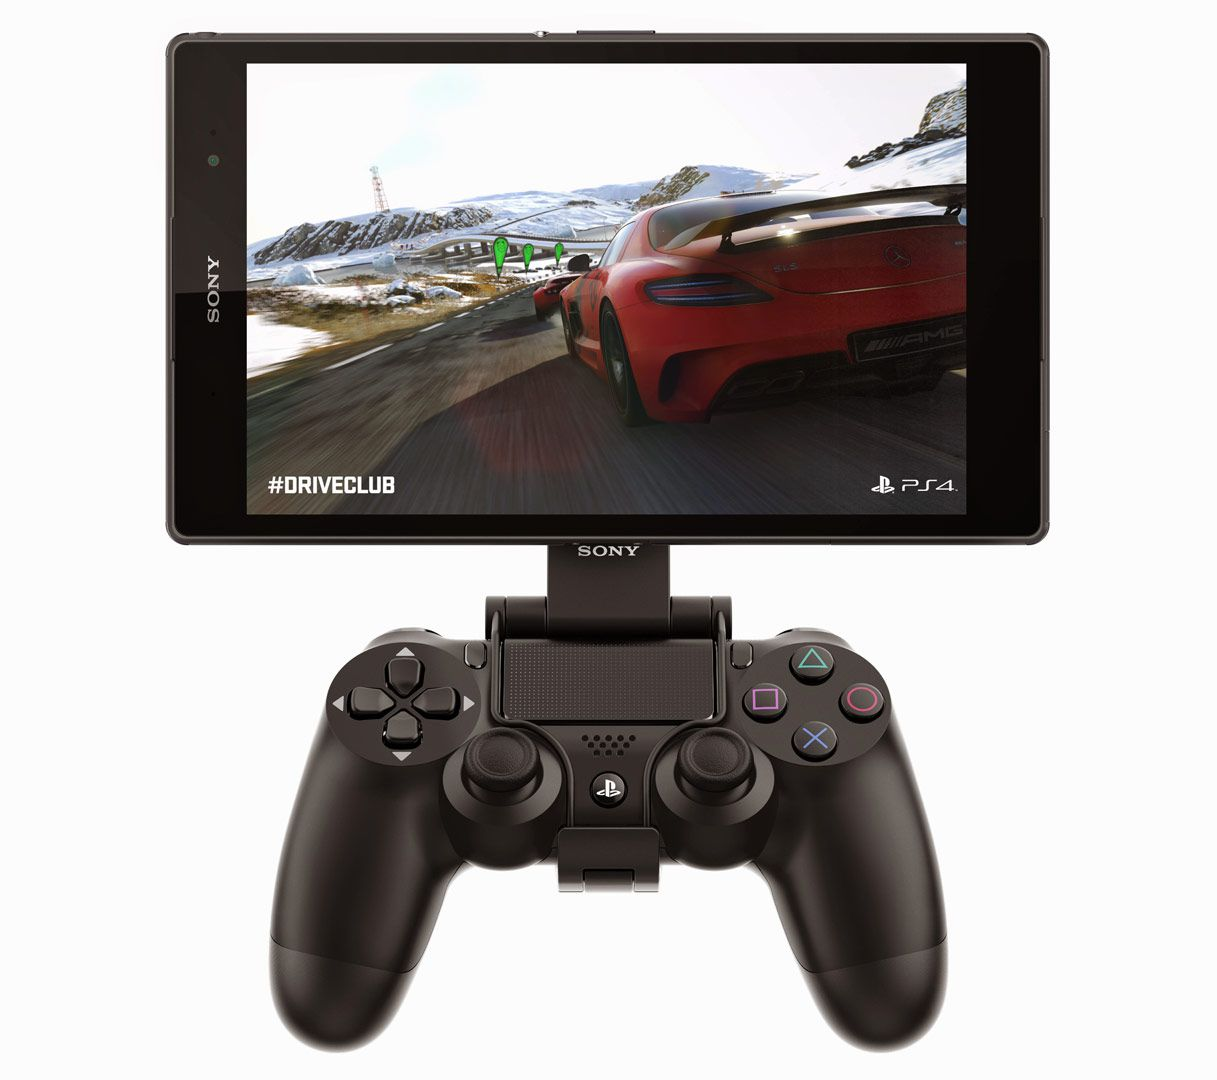 PS4 Remote Play is coming to Sony Xperia Z3 phones and ...